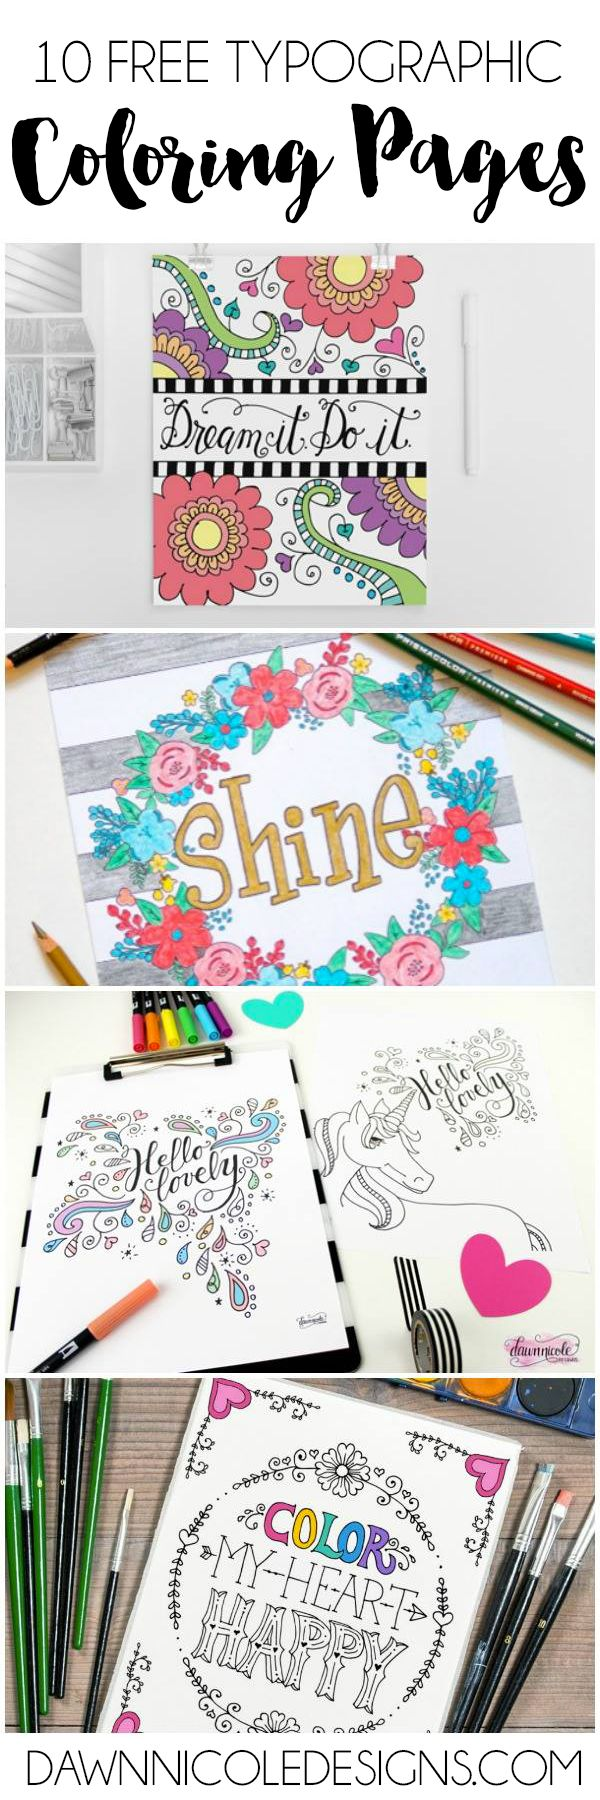 Colouring book for adults singapore - 10 Free Typographic Coloring Pages